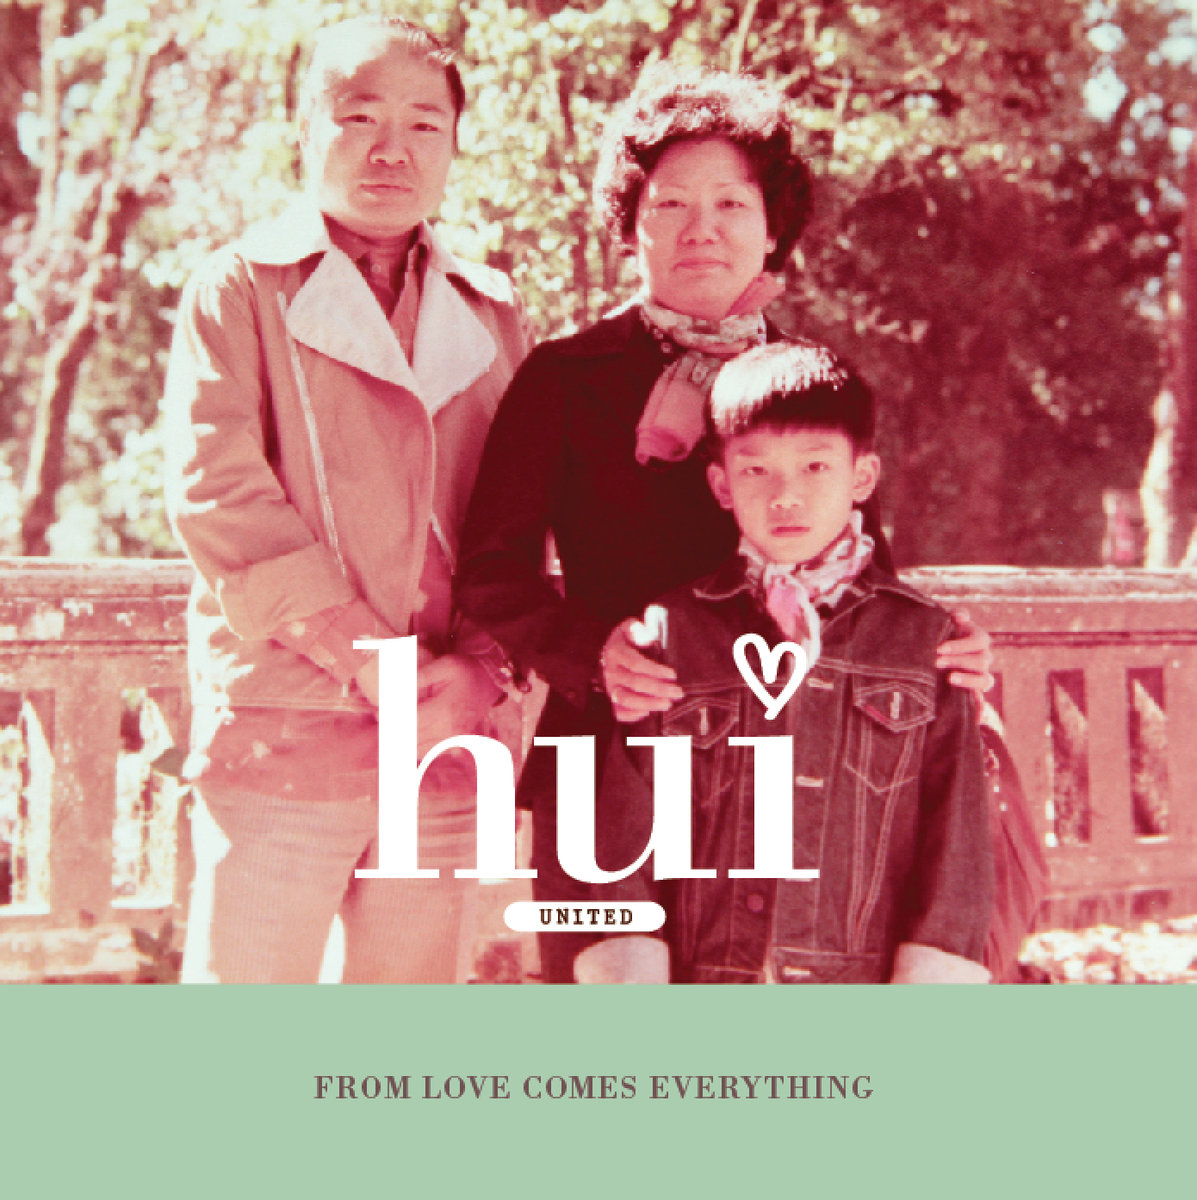 CD From Love Comes Everything : Hui United